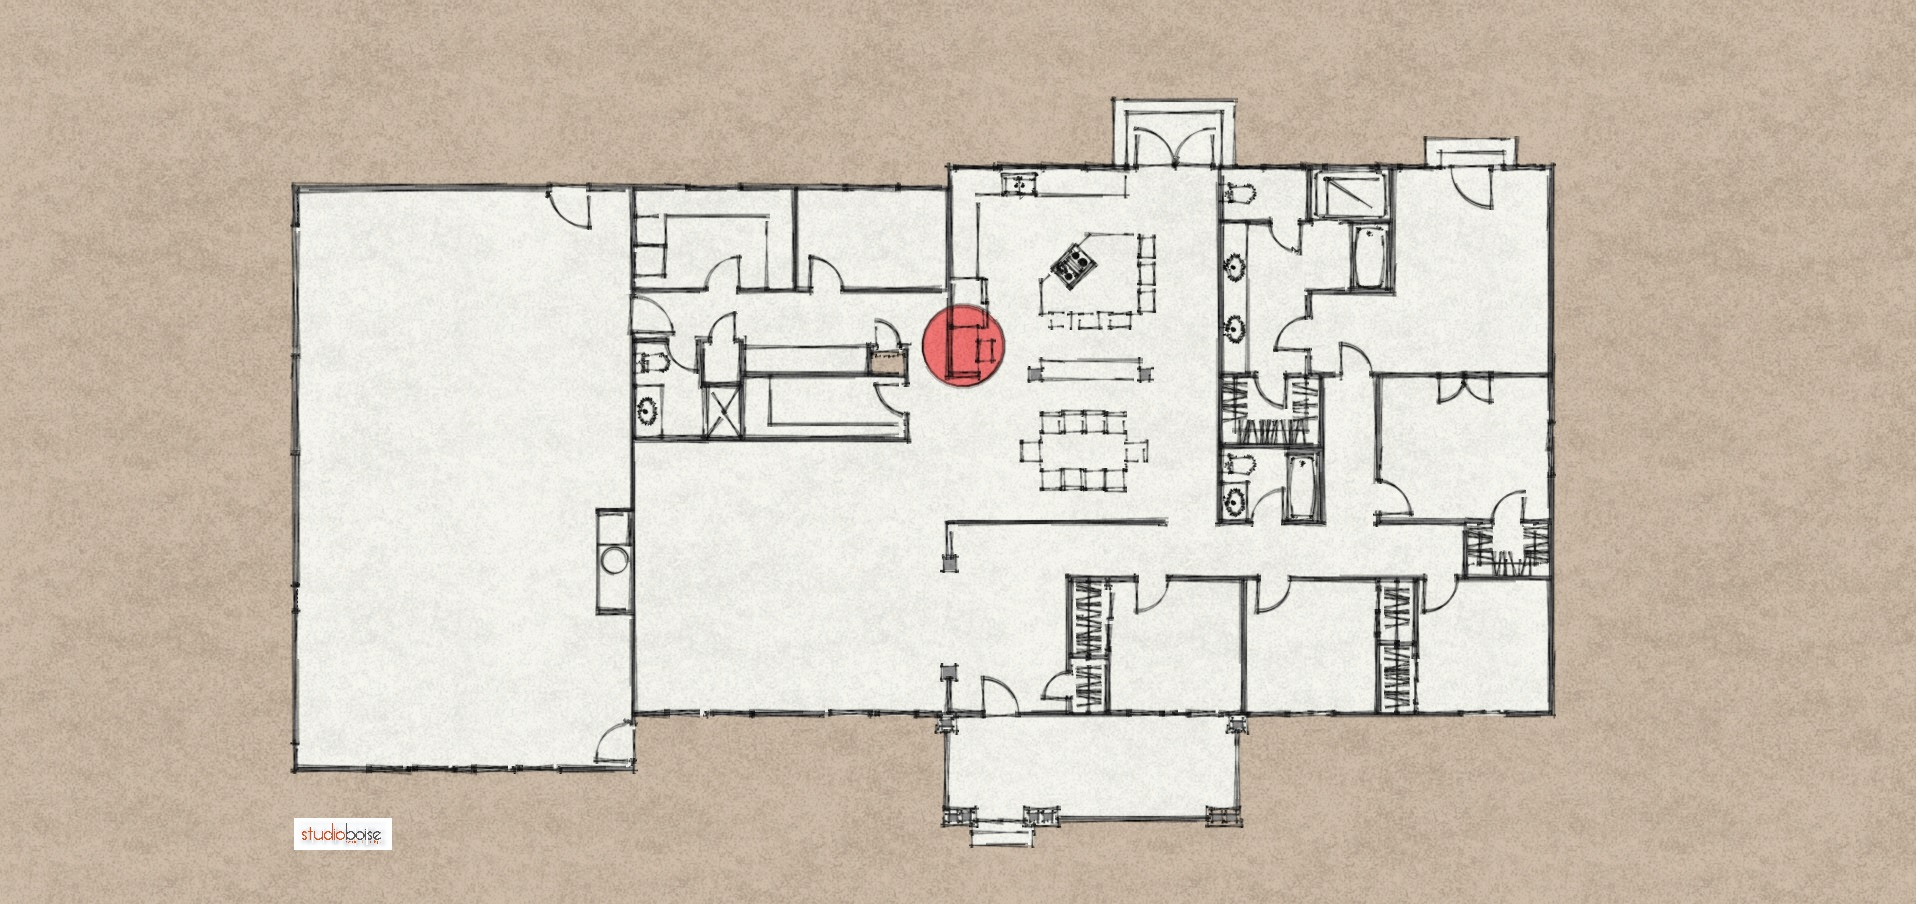 mail floorplan. Studio Boise Created A Few Floor Plan Options Improving The Flow Of Spaces And Incorporating Mail Floorplan